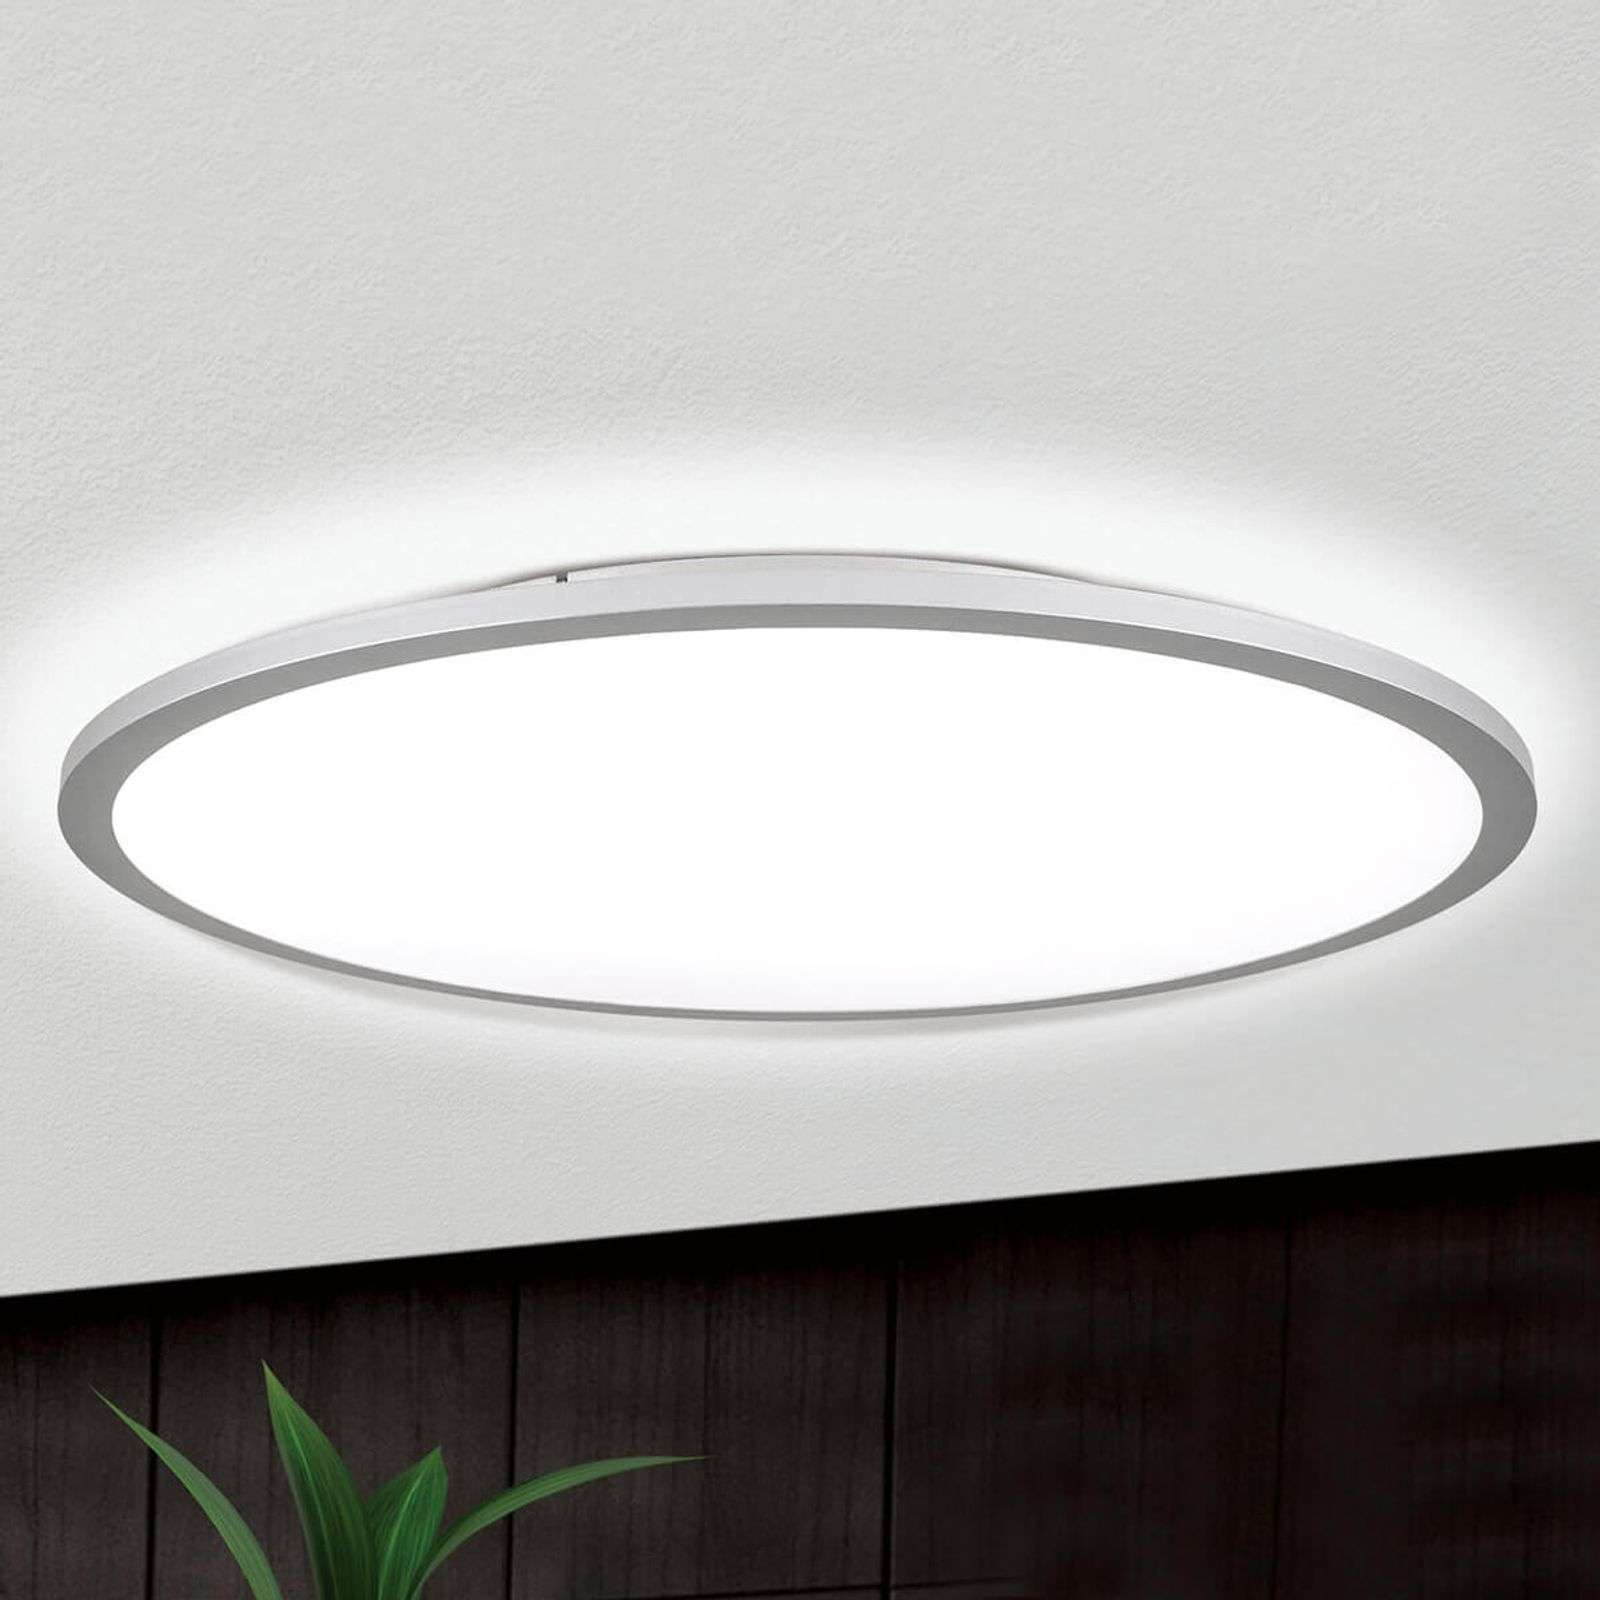 Plafonnier LED Aria titane, dimmable - 60 cm